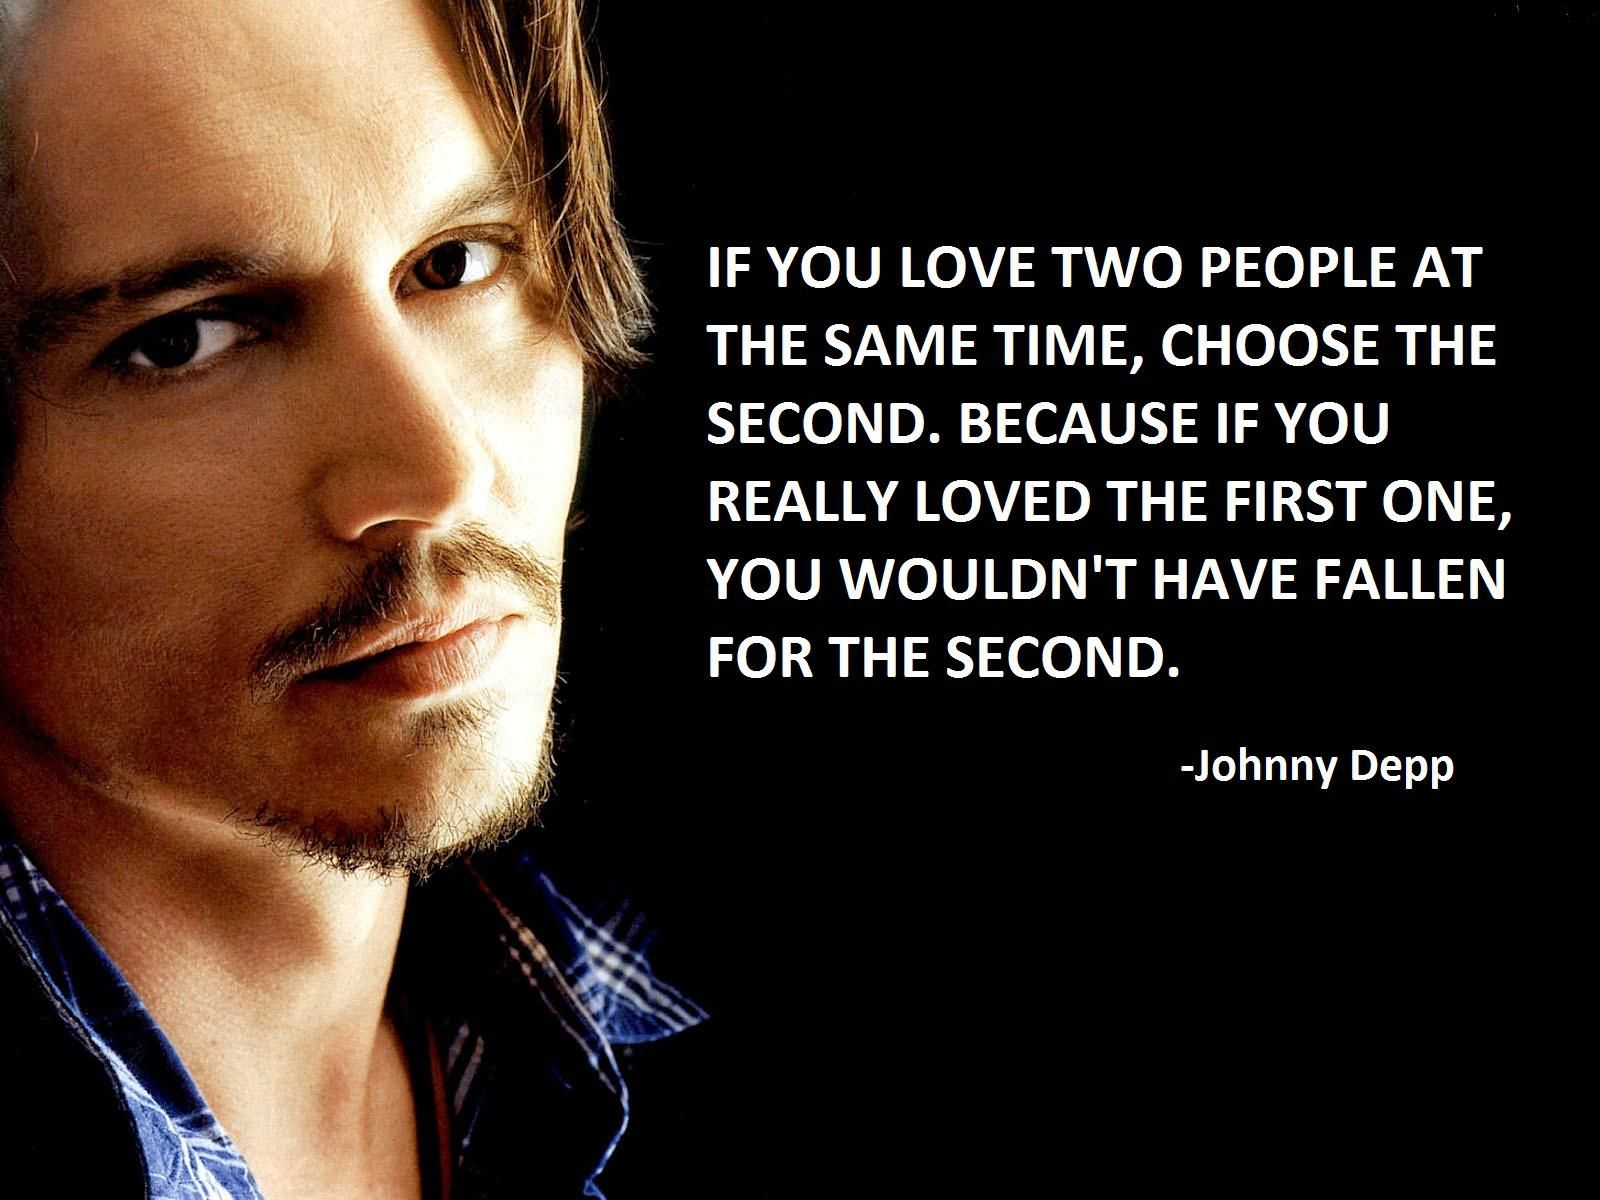 Johnny Depp Quotes About Love New Jack Sparrow Love Quote  Tags 1600X1200 Johnny Depp Quotes Love